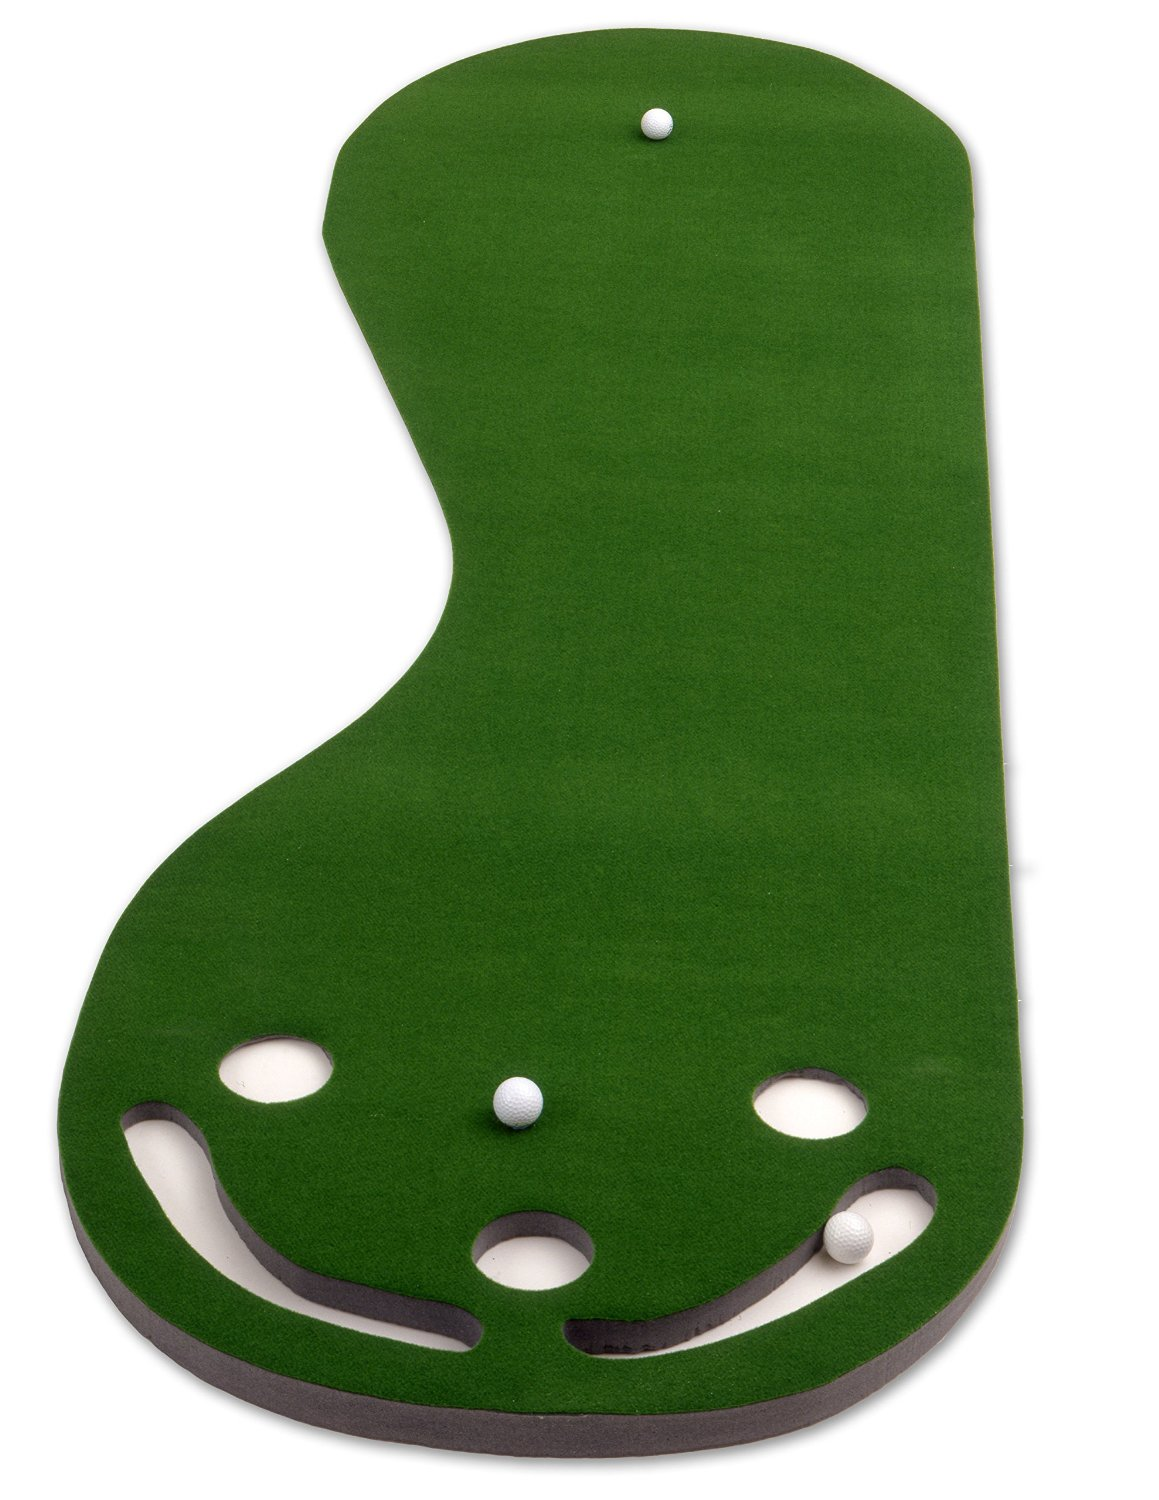 Putt-A-Bout Grassroots Par Three Putting Green